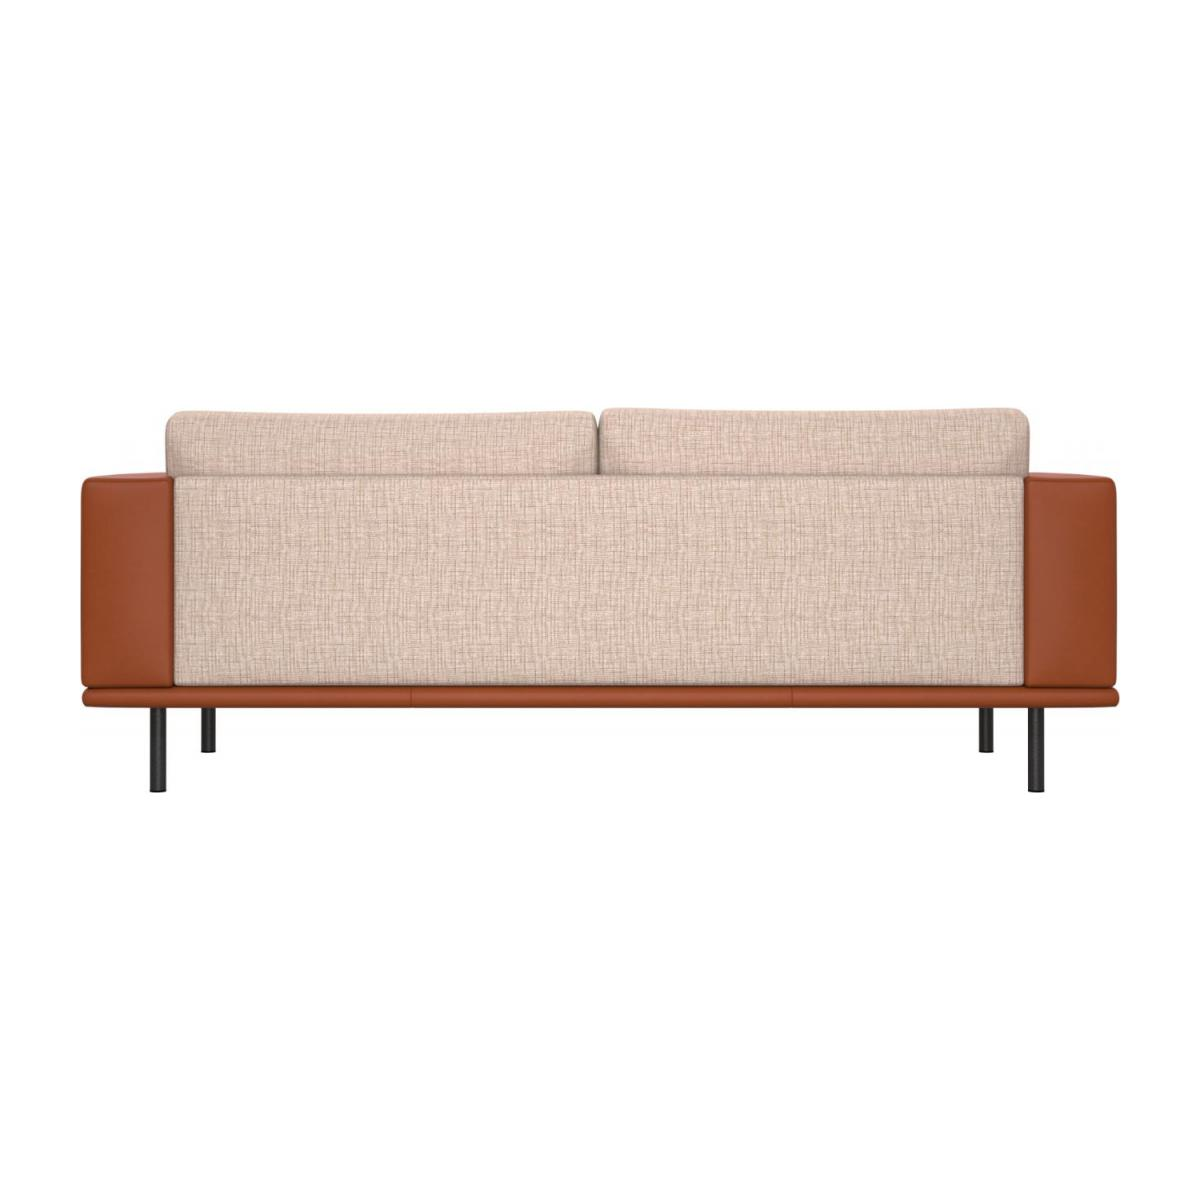 3 seater sofa in Ancio fabric, nature with base and armrests in brown leather n°4